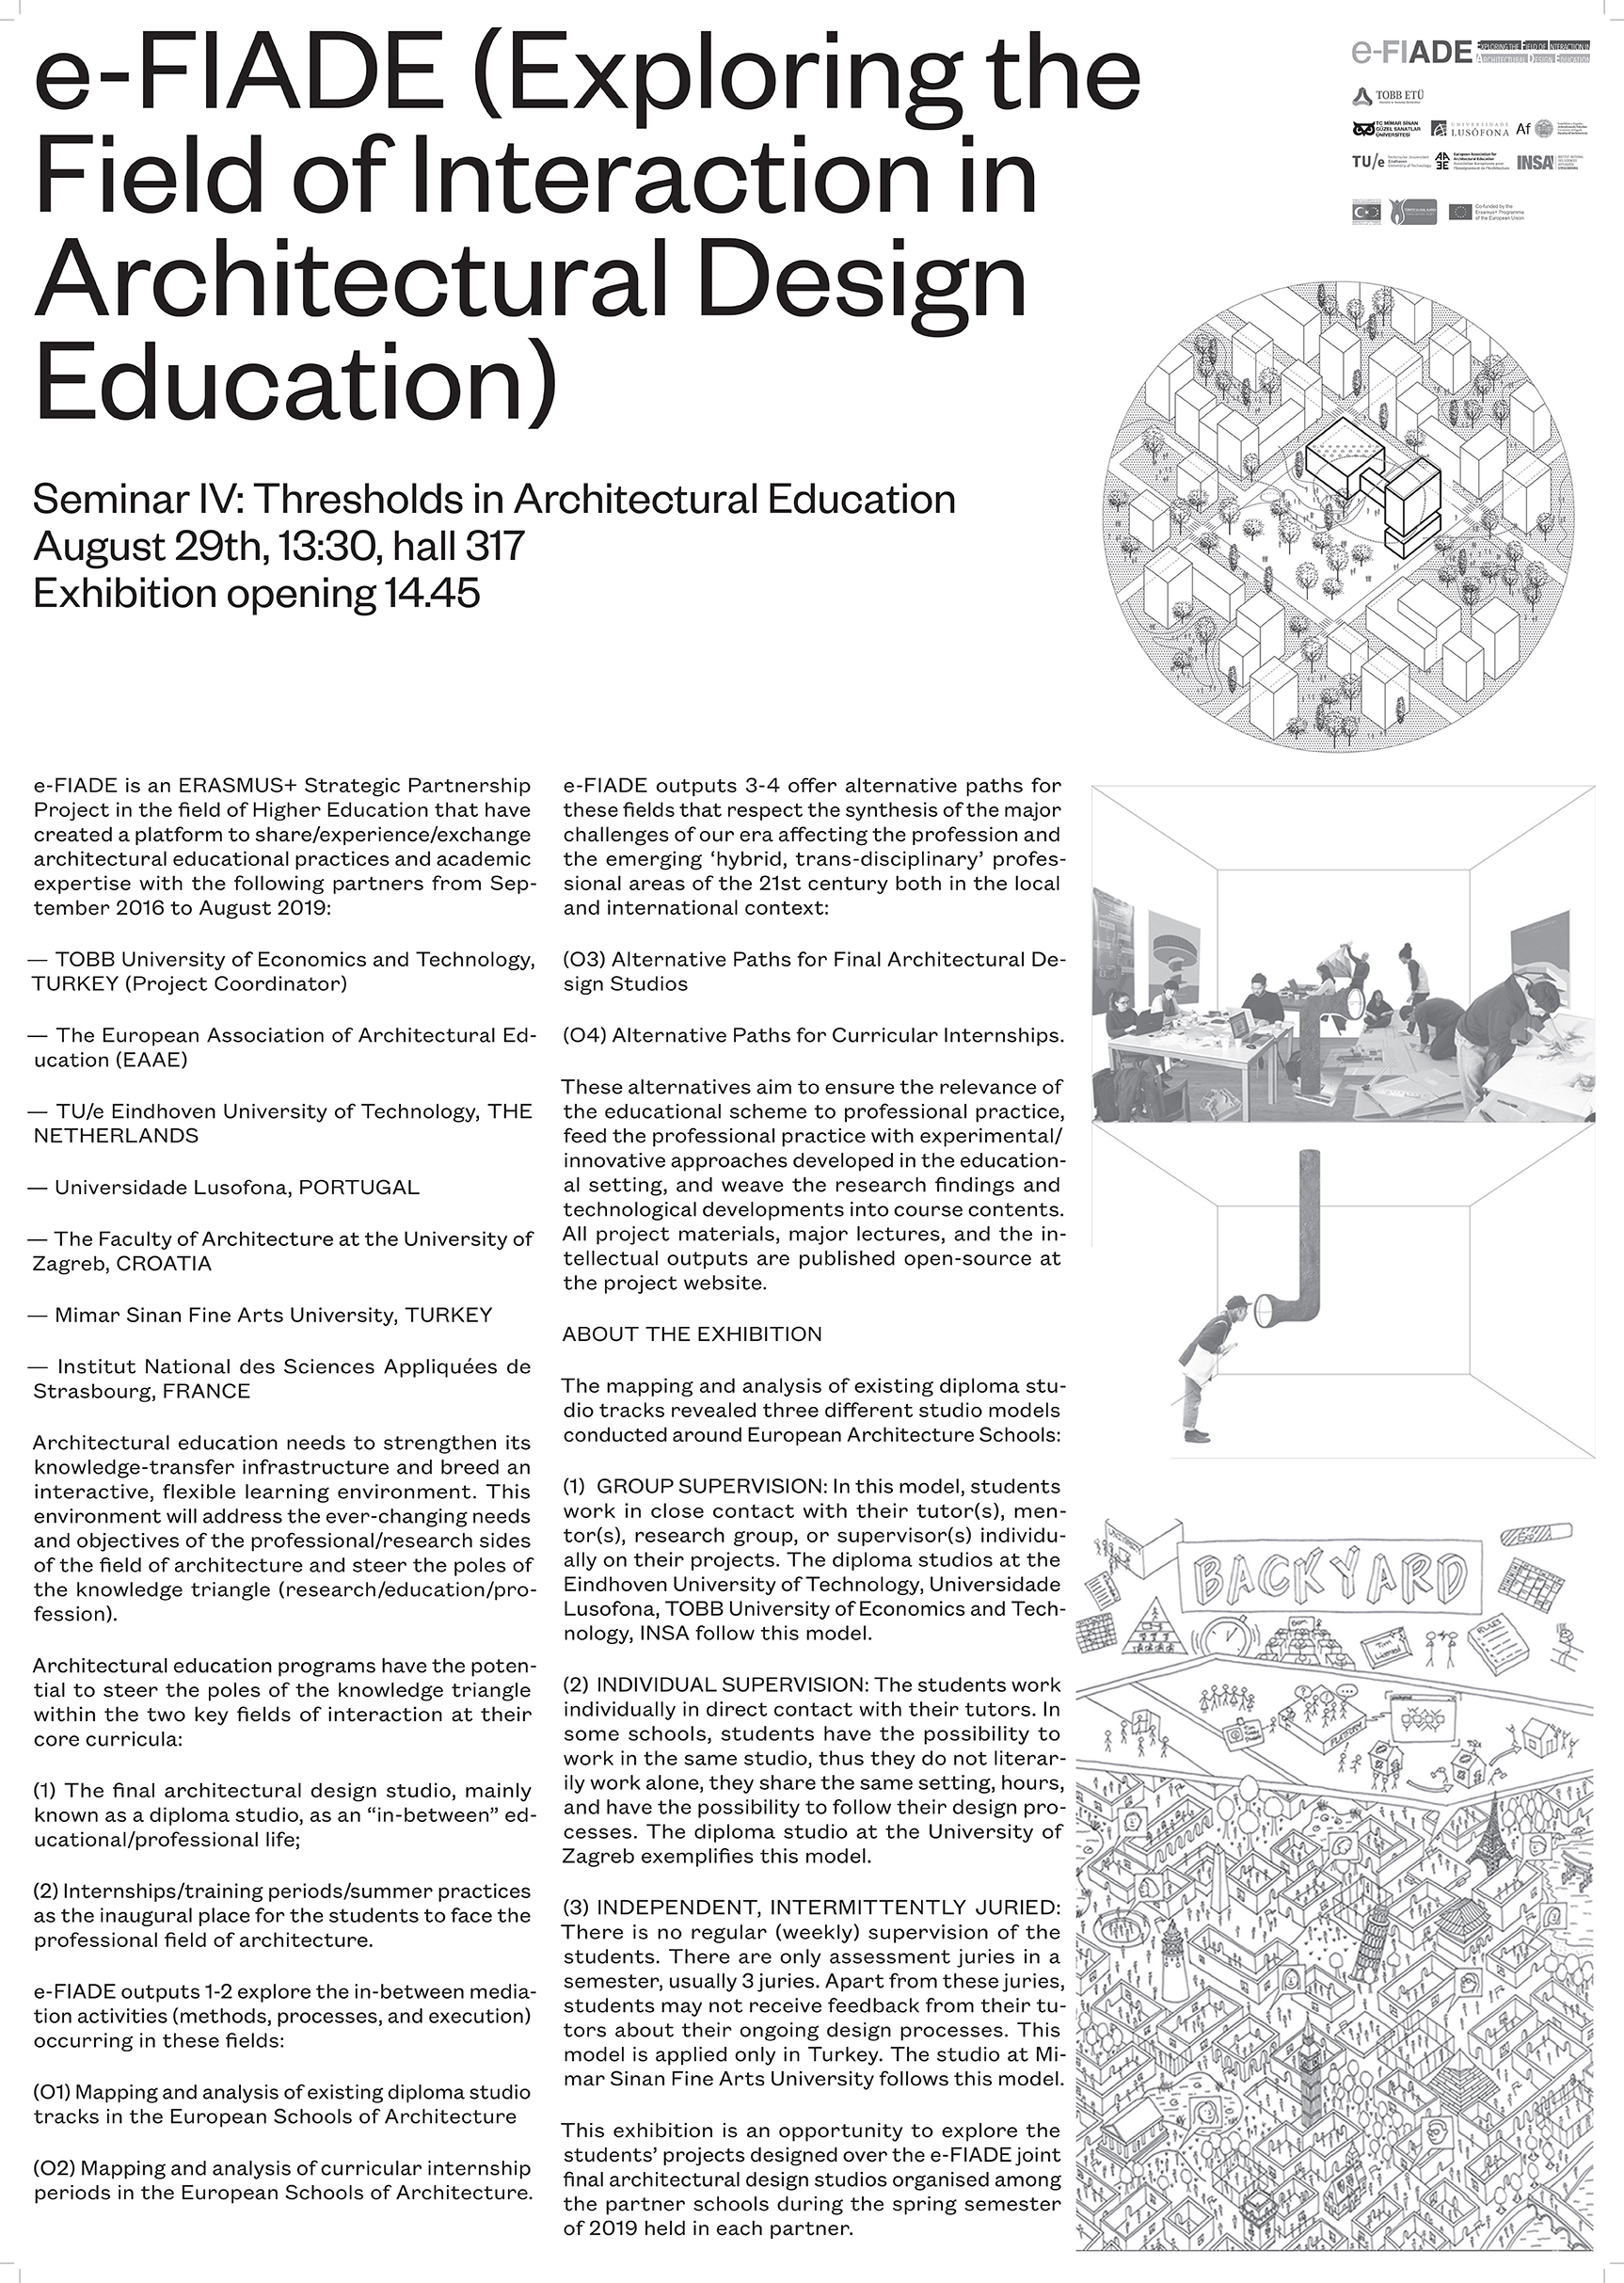 e-FIADE Seminar IV: Thresholds in Architectural Education